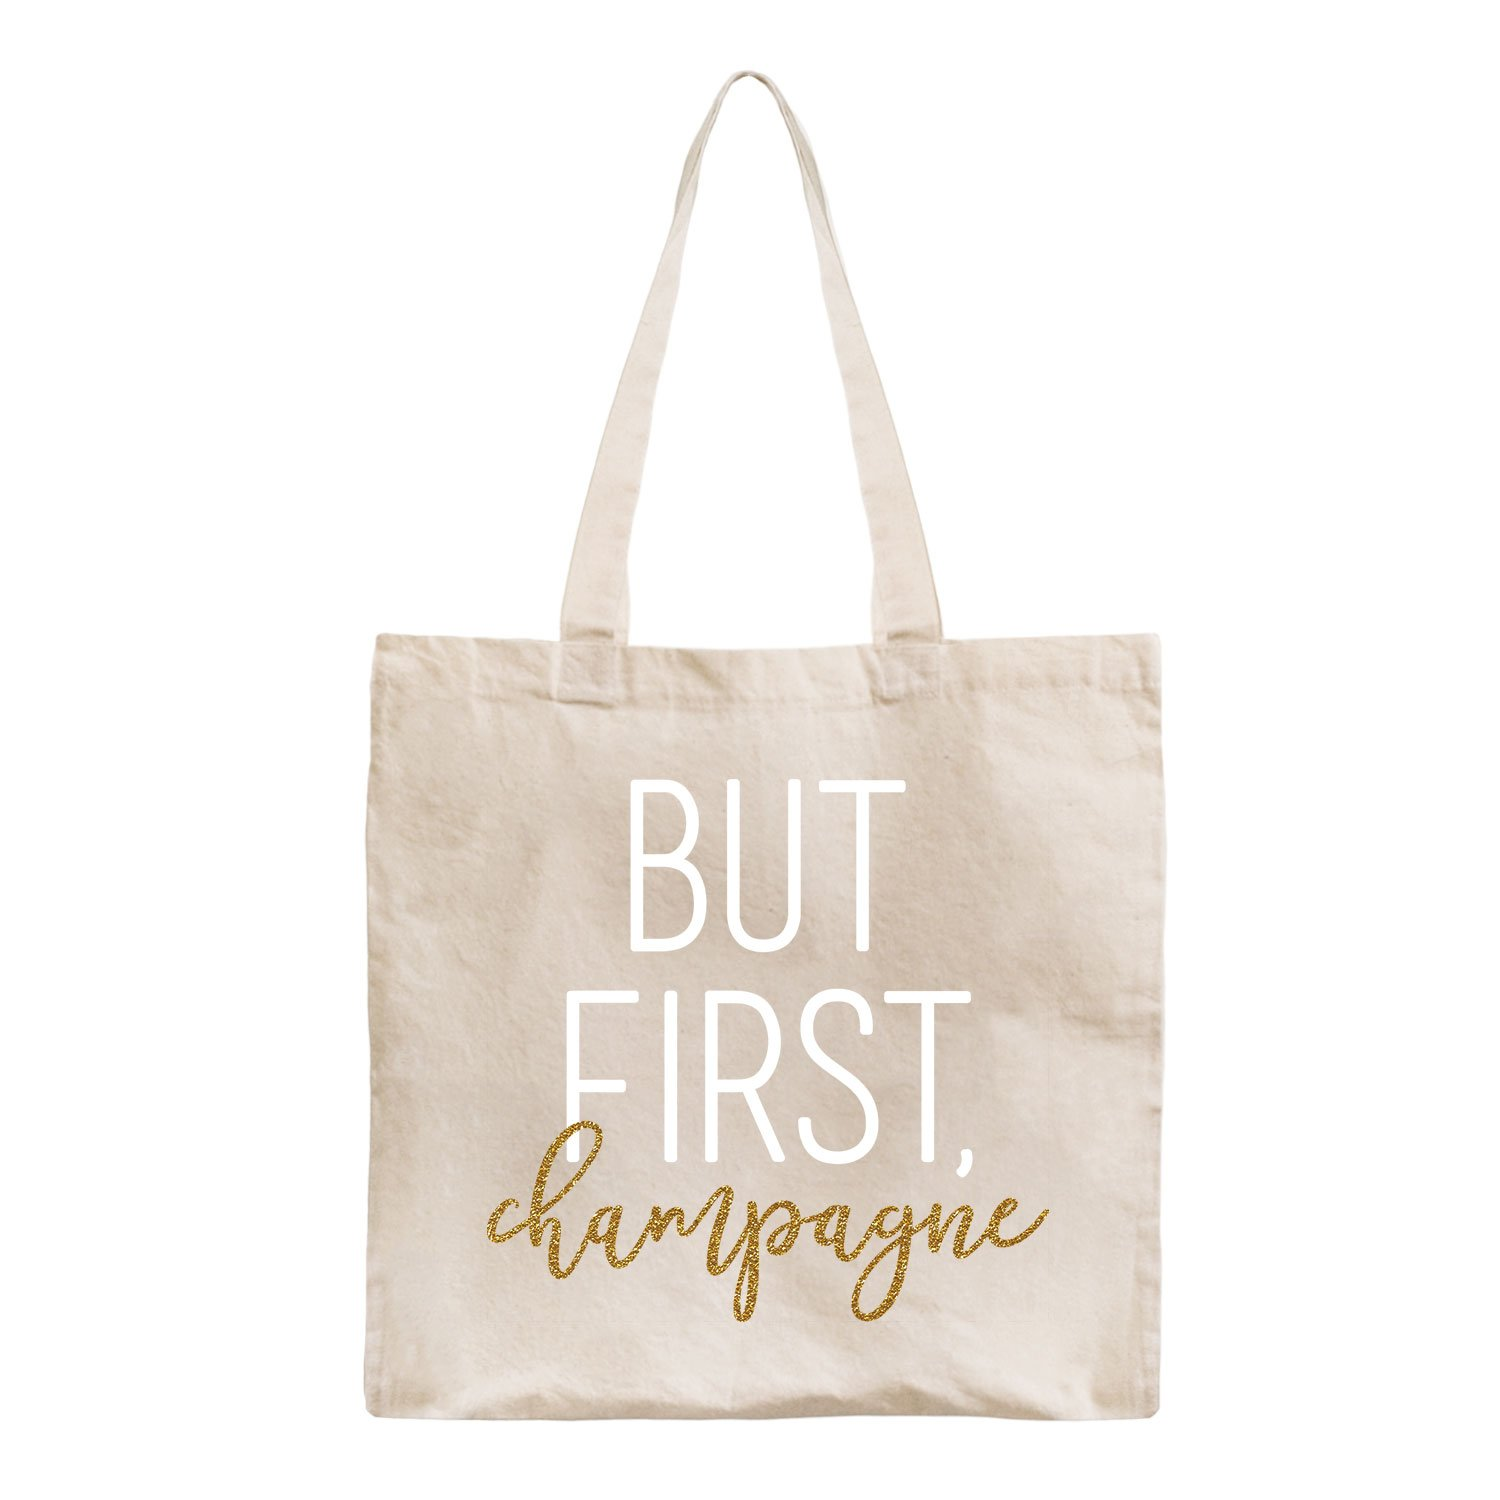 But First Champagne -Canvas Tote-One Size